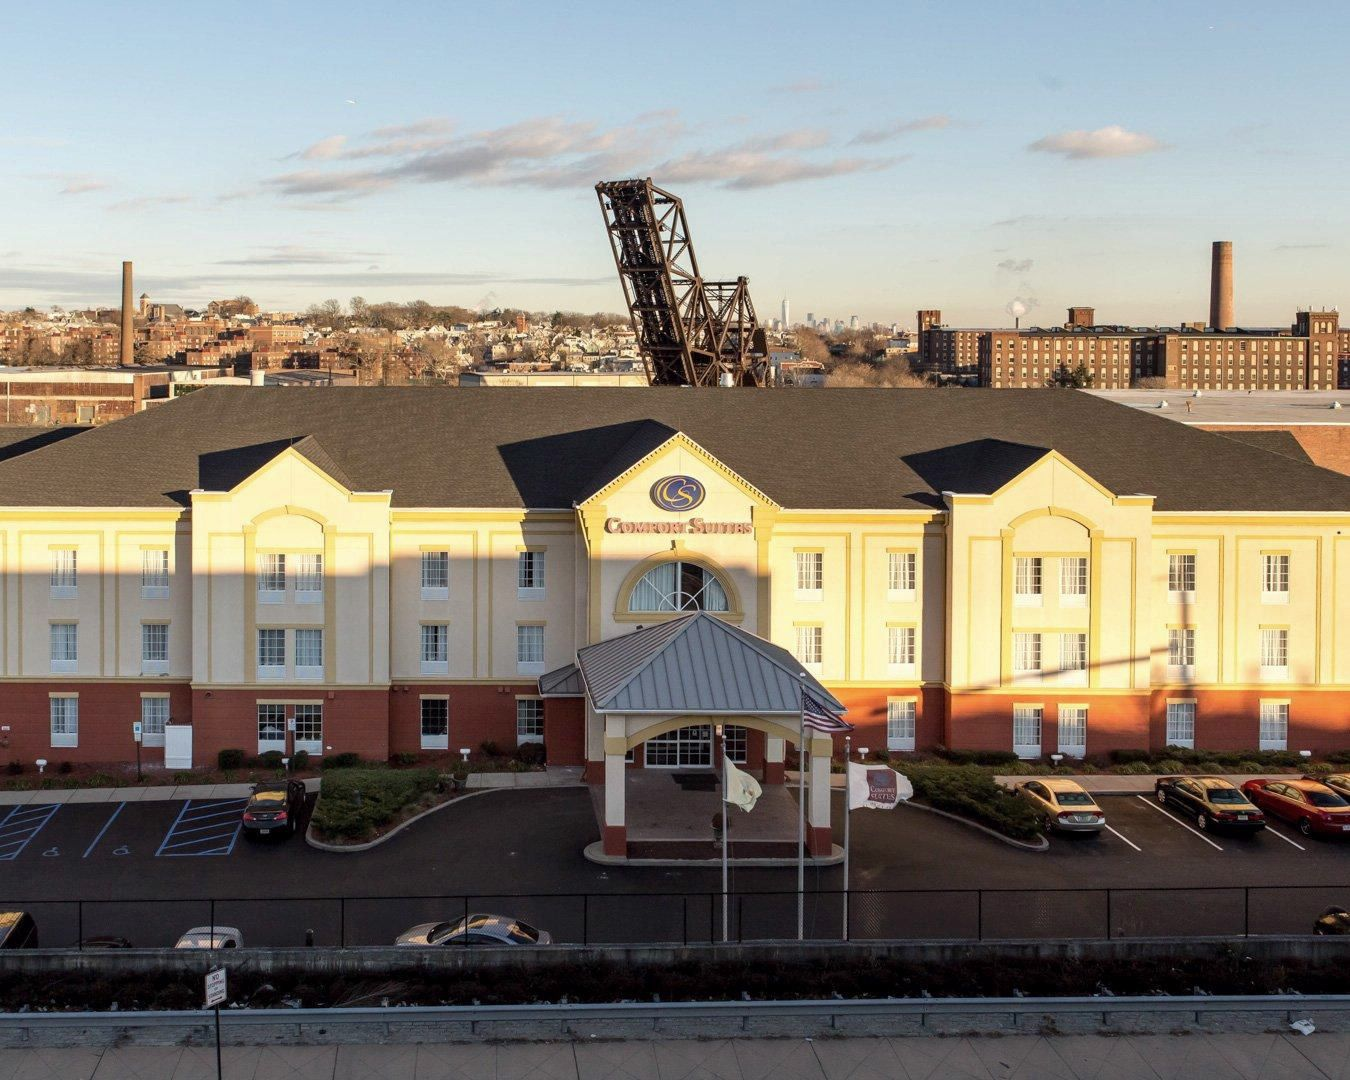 Newark Nj Hotels Comfort Suites Hotel Near Airport